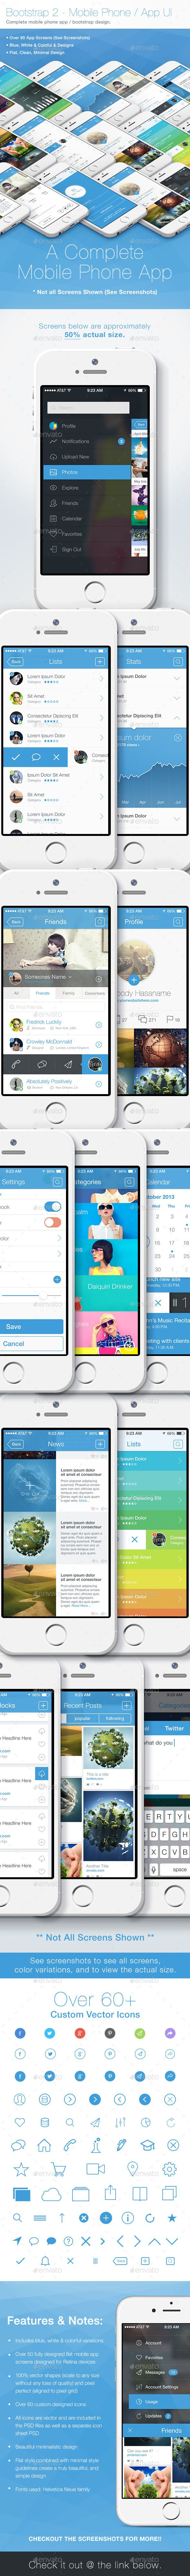 Bootstrap 2 - Flat Mobile Phone - App UI - User Interfaces Web Elements